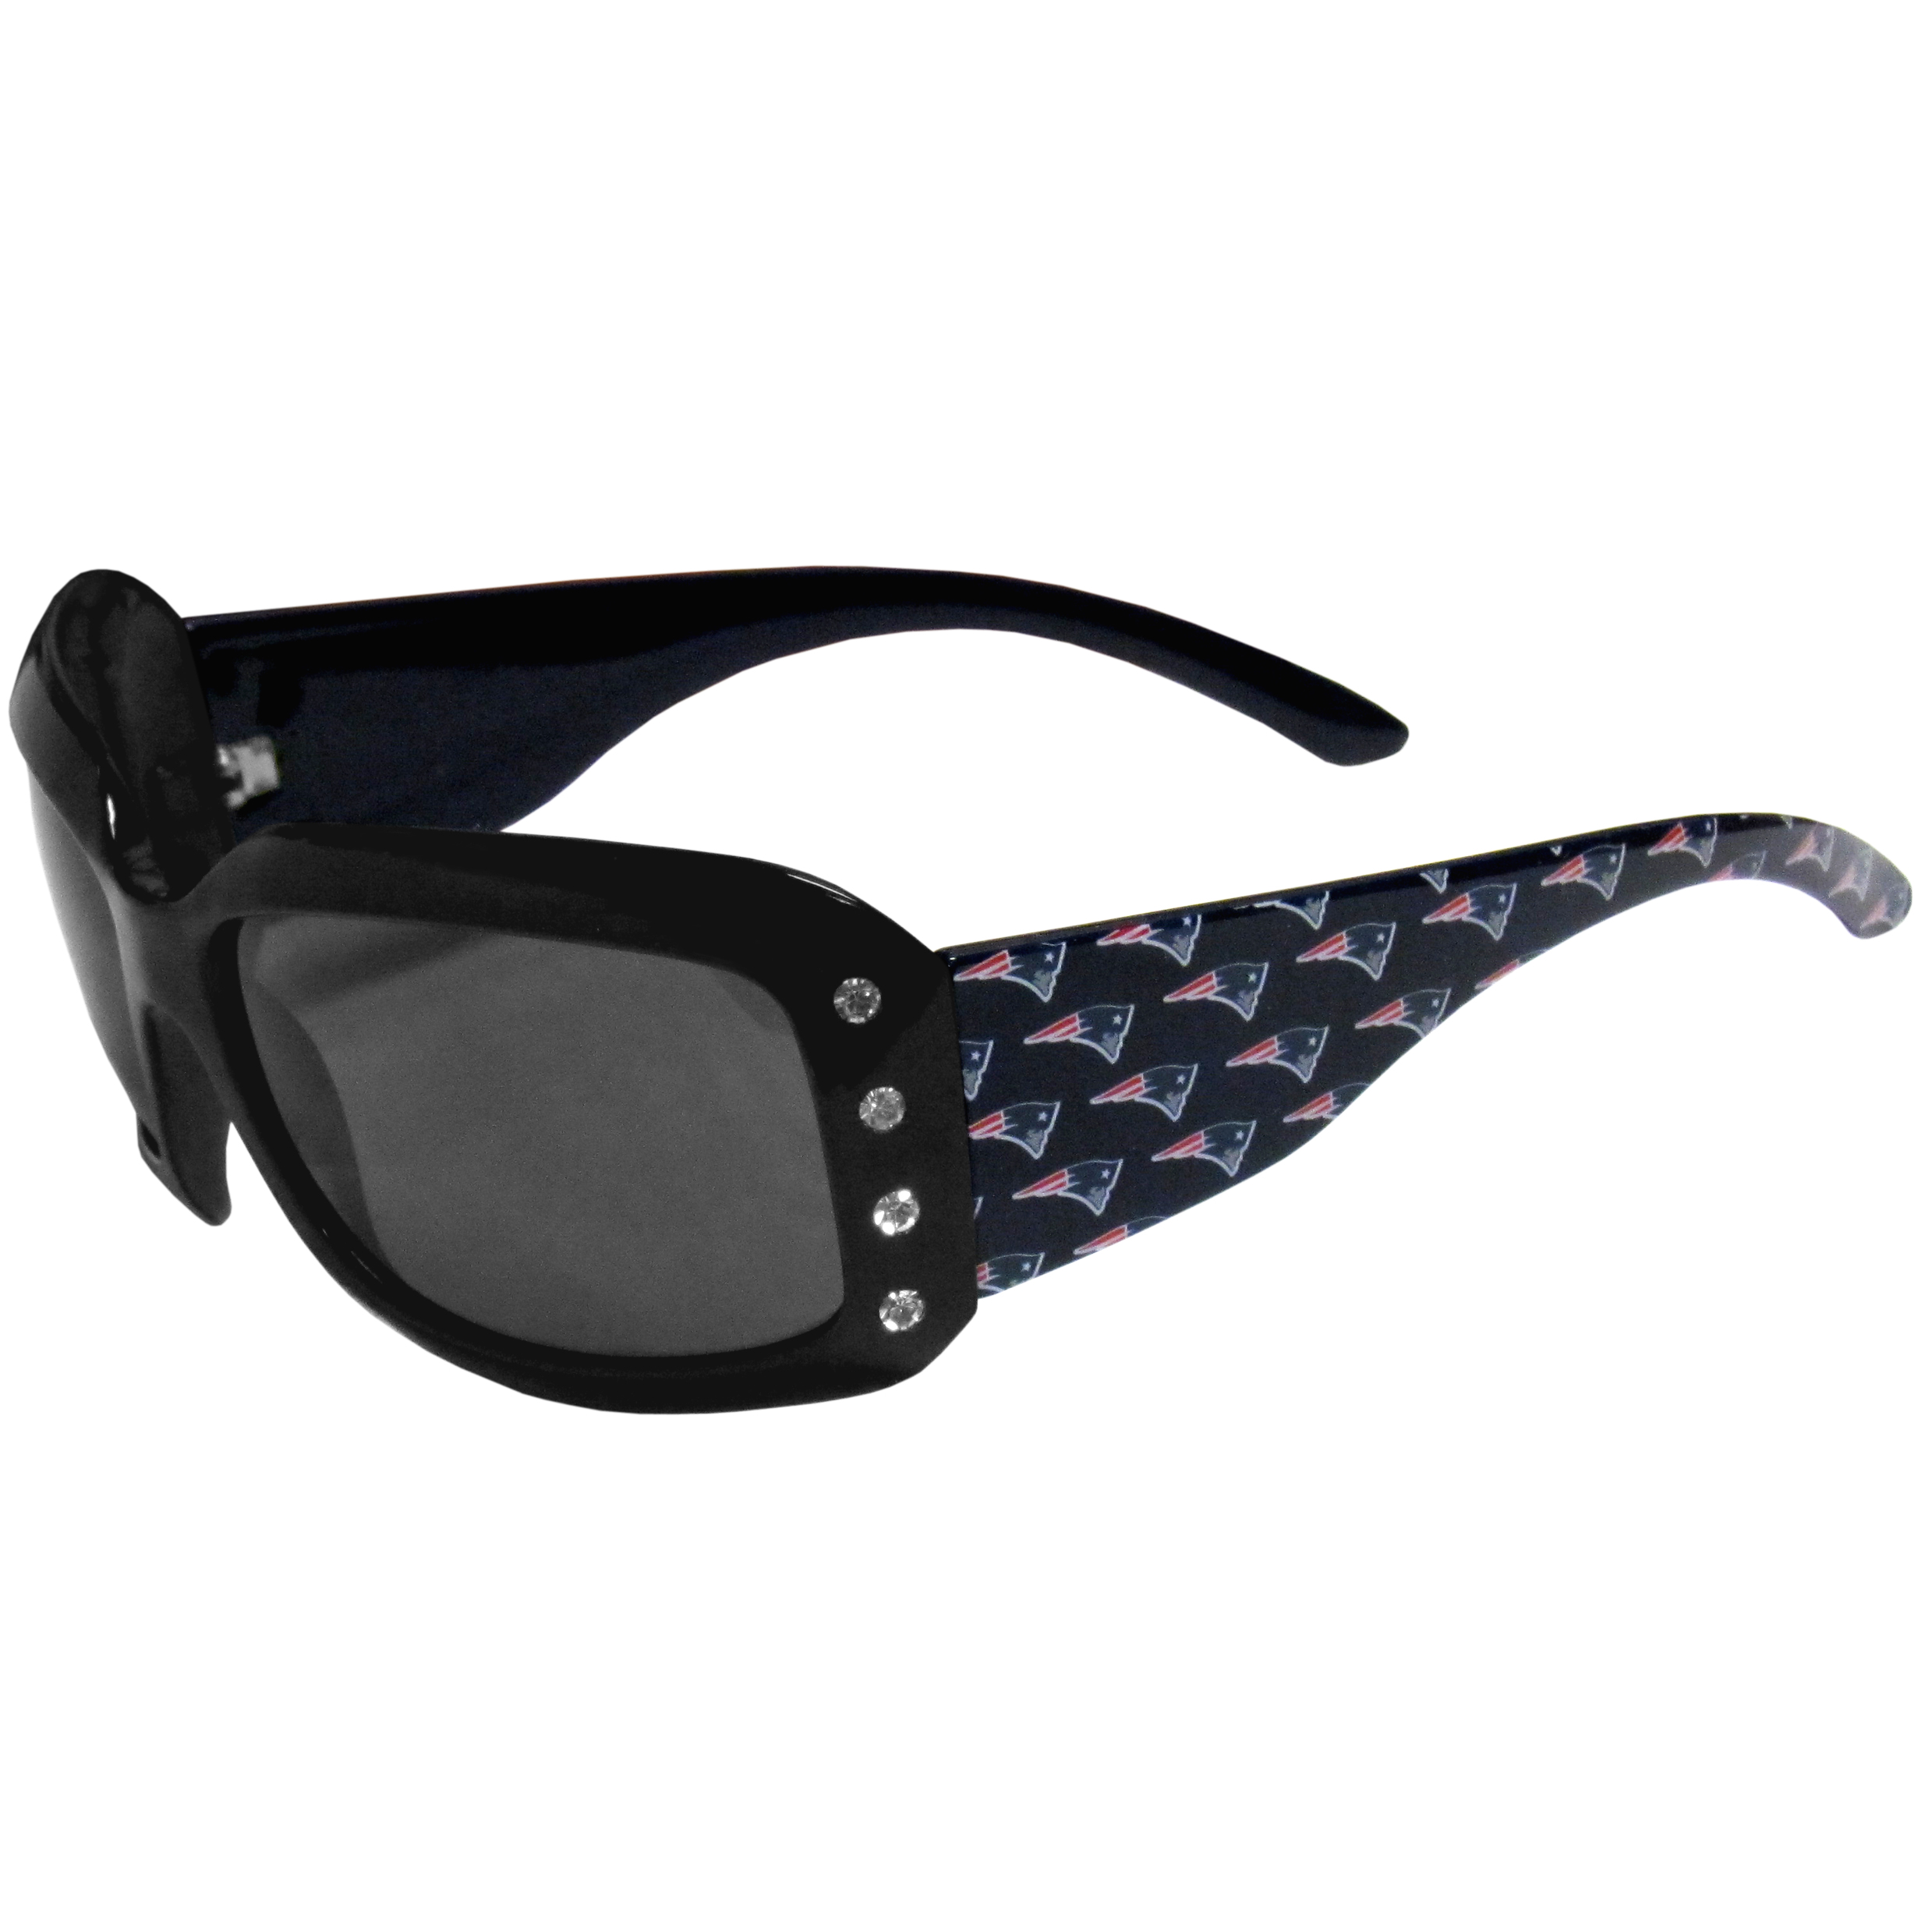 New England Patriots Designer Women's Sunglasses - Our designer women's sunglasses have a repeating New England Patriots logo design on the team colored arms and rhinestone accents. 100% UVA/UVB protection.